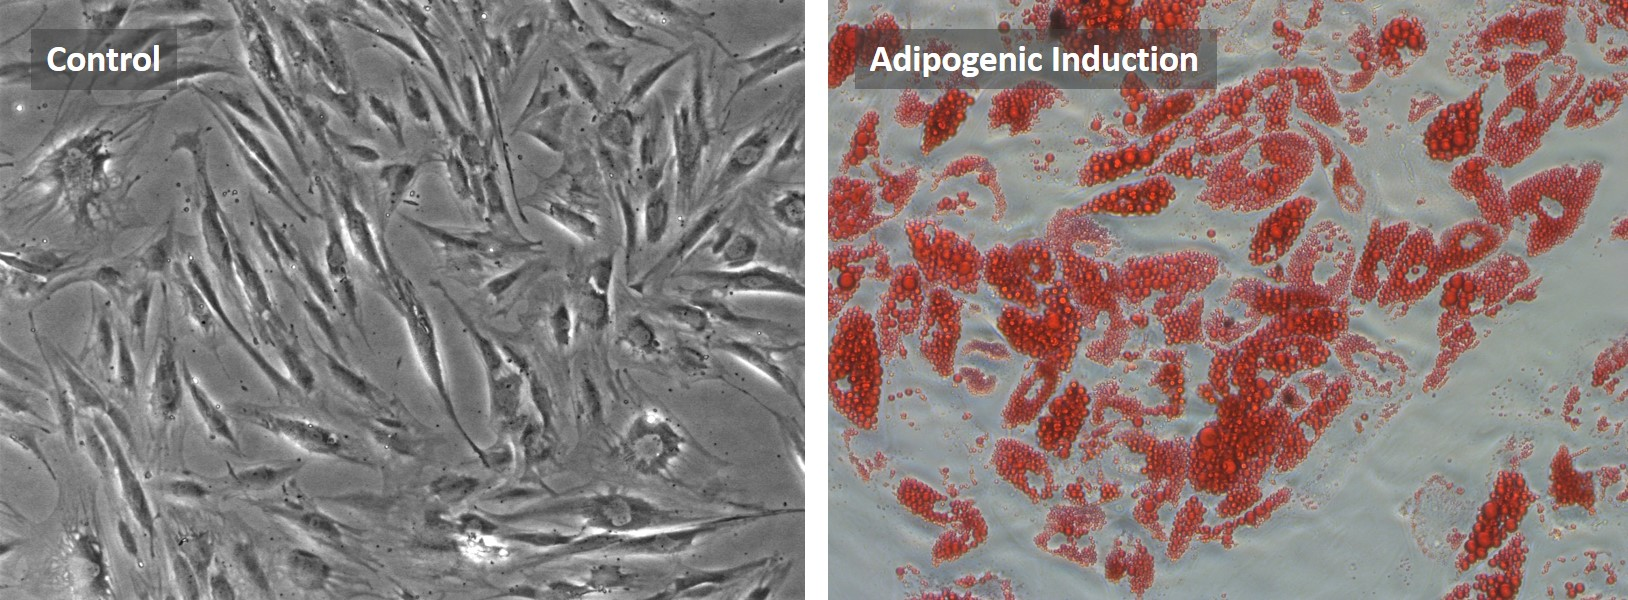 Human ADSC adipocyte differentiation